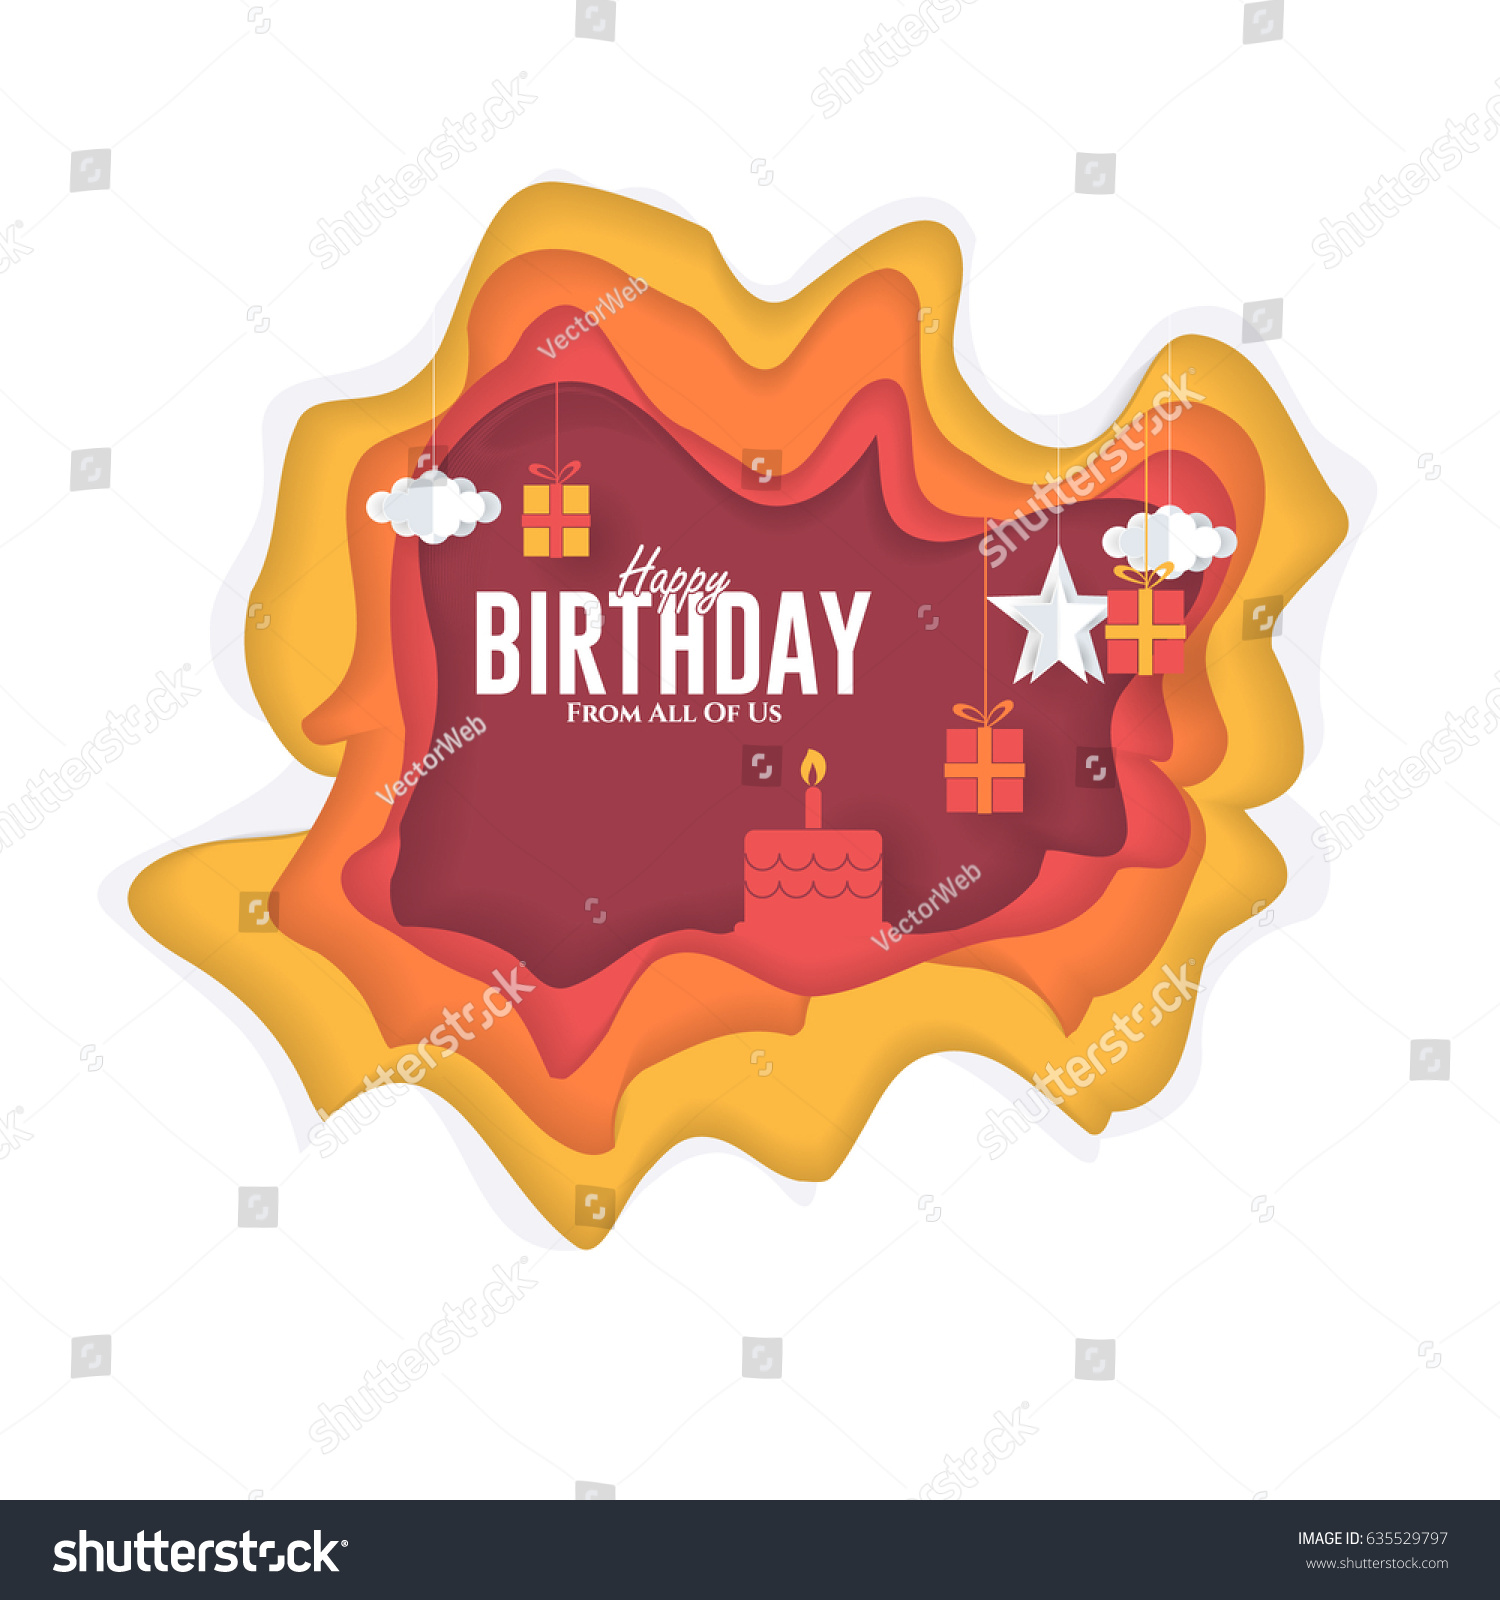 Happy Birthday Ornament Elements Congratulations Greeting Stock